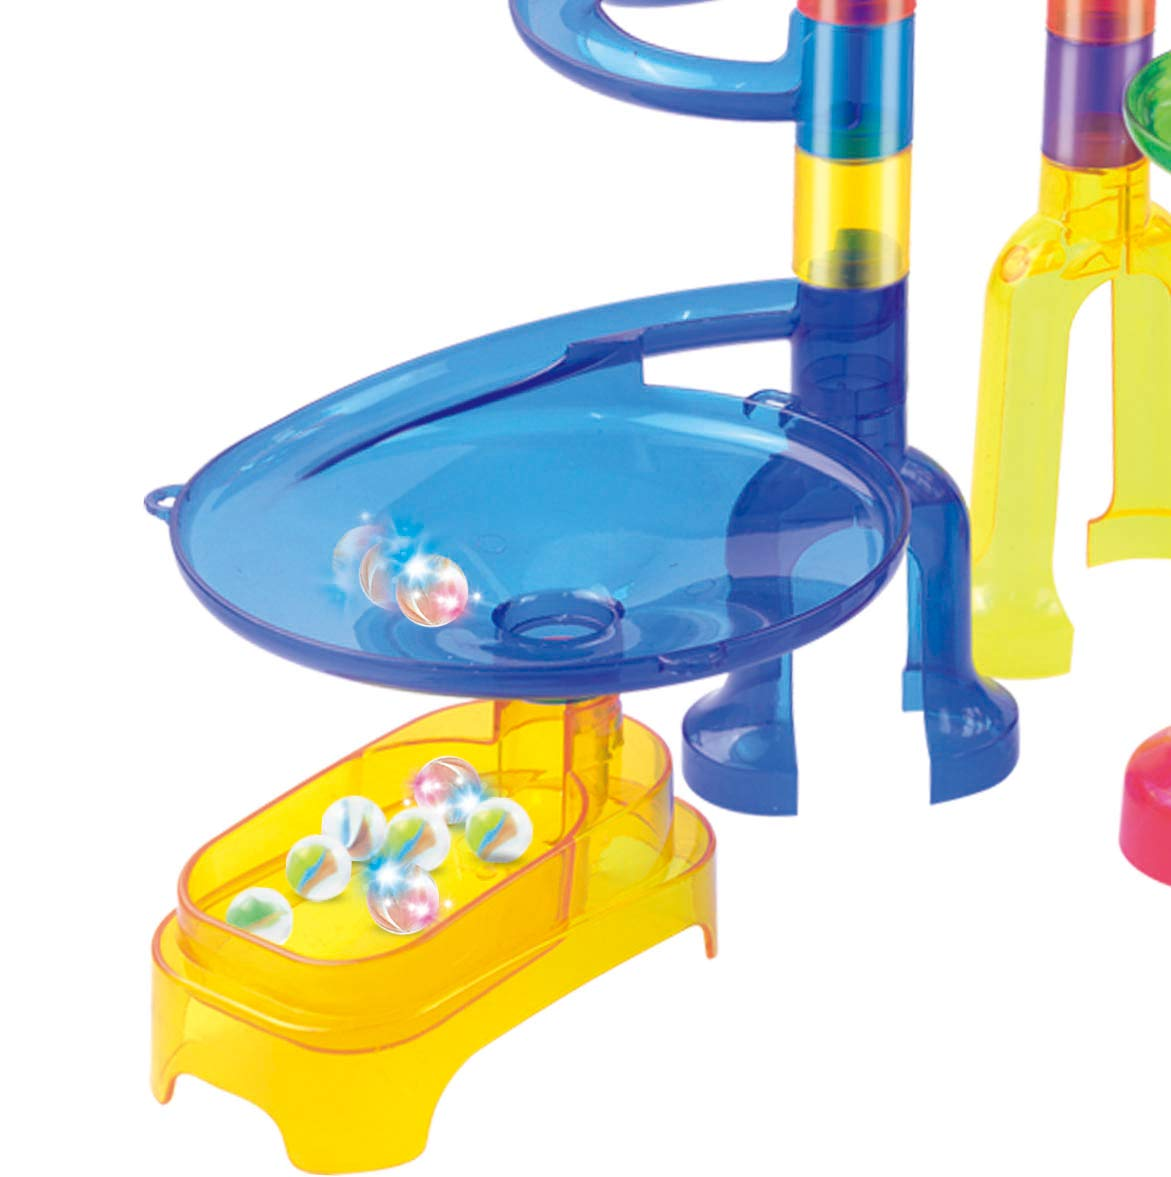 Marble Run Premium Toy Set